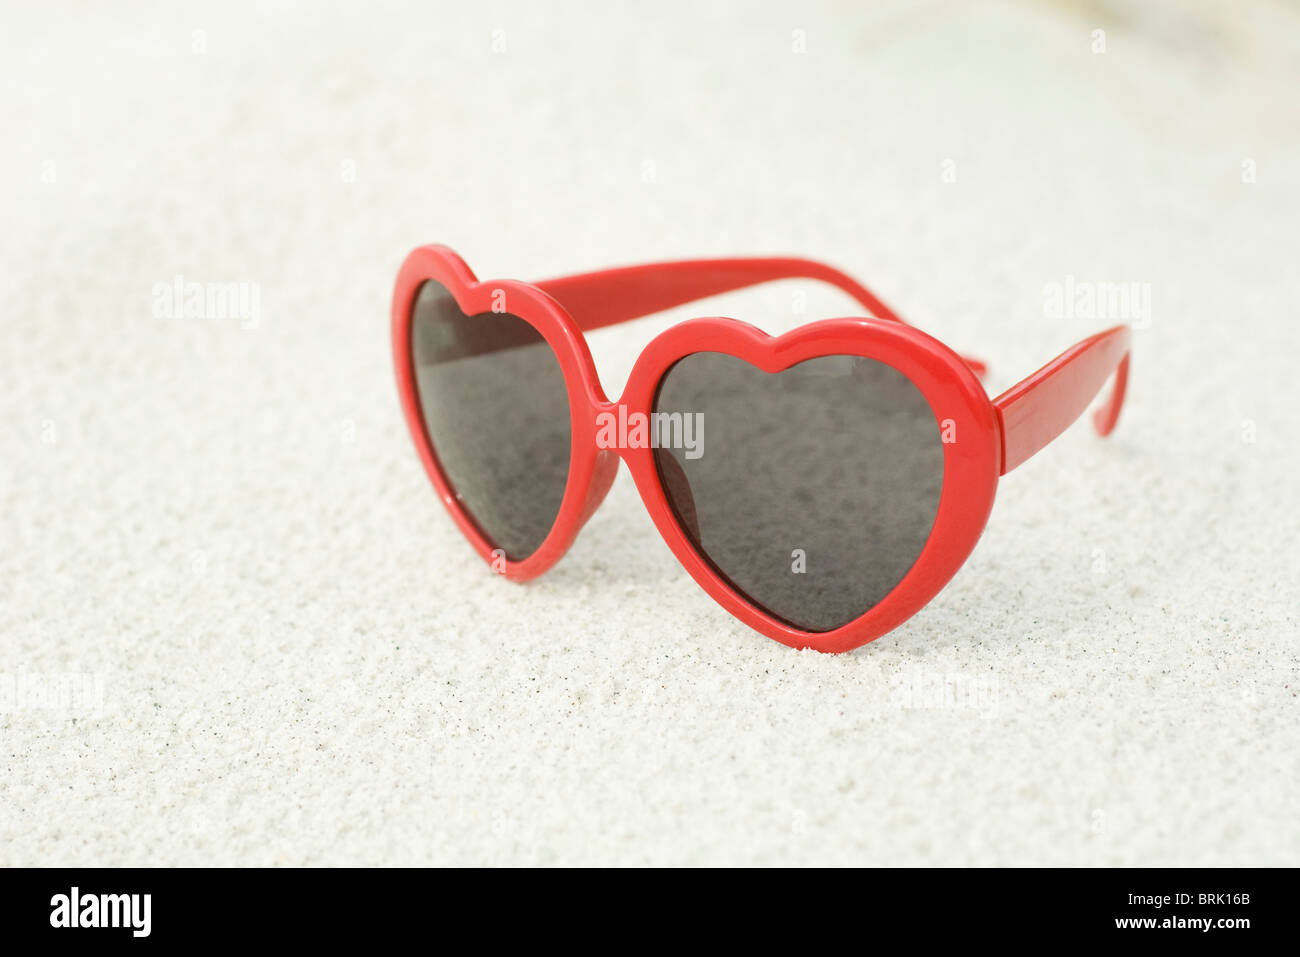 6af807dce372 Heart Shaped Sunglasses Stock Photos   Heart Shaped Sunglasses Stock ...